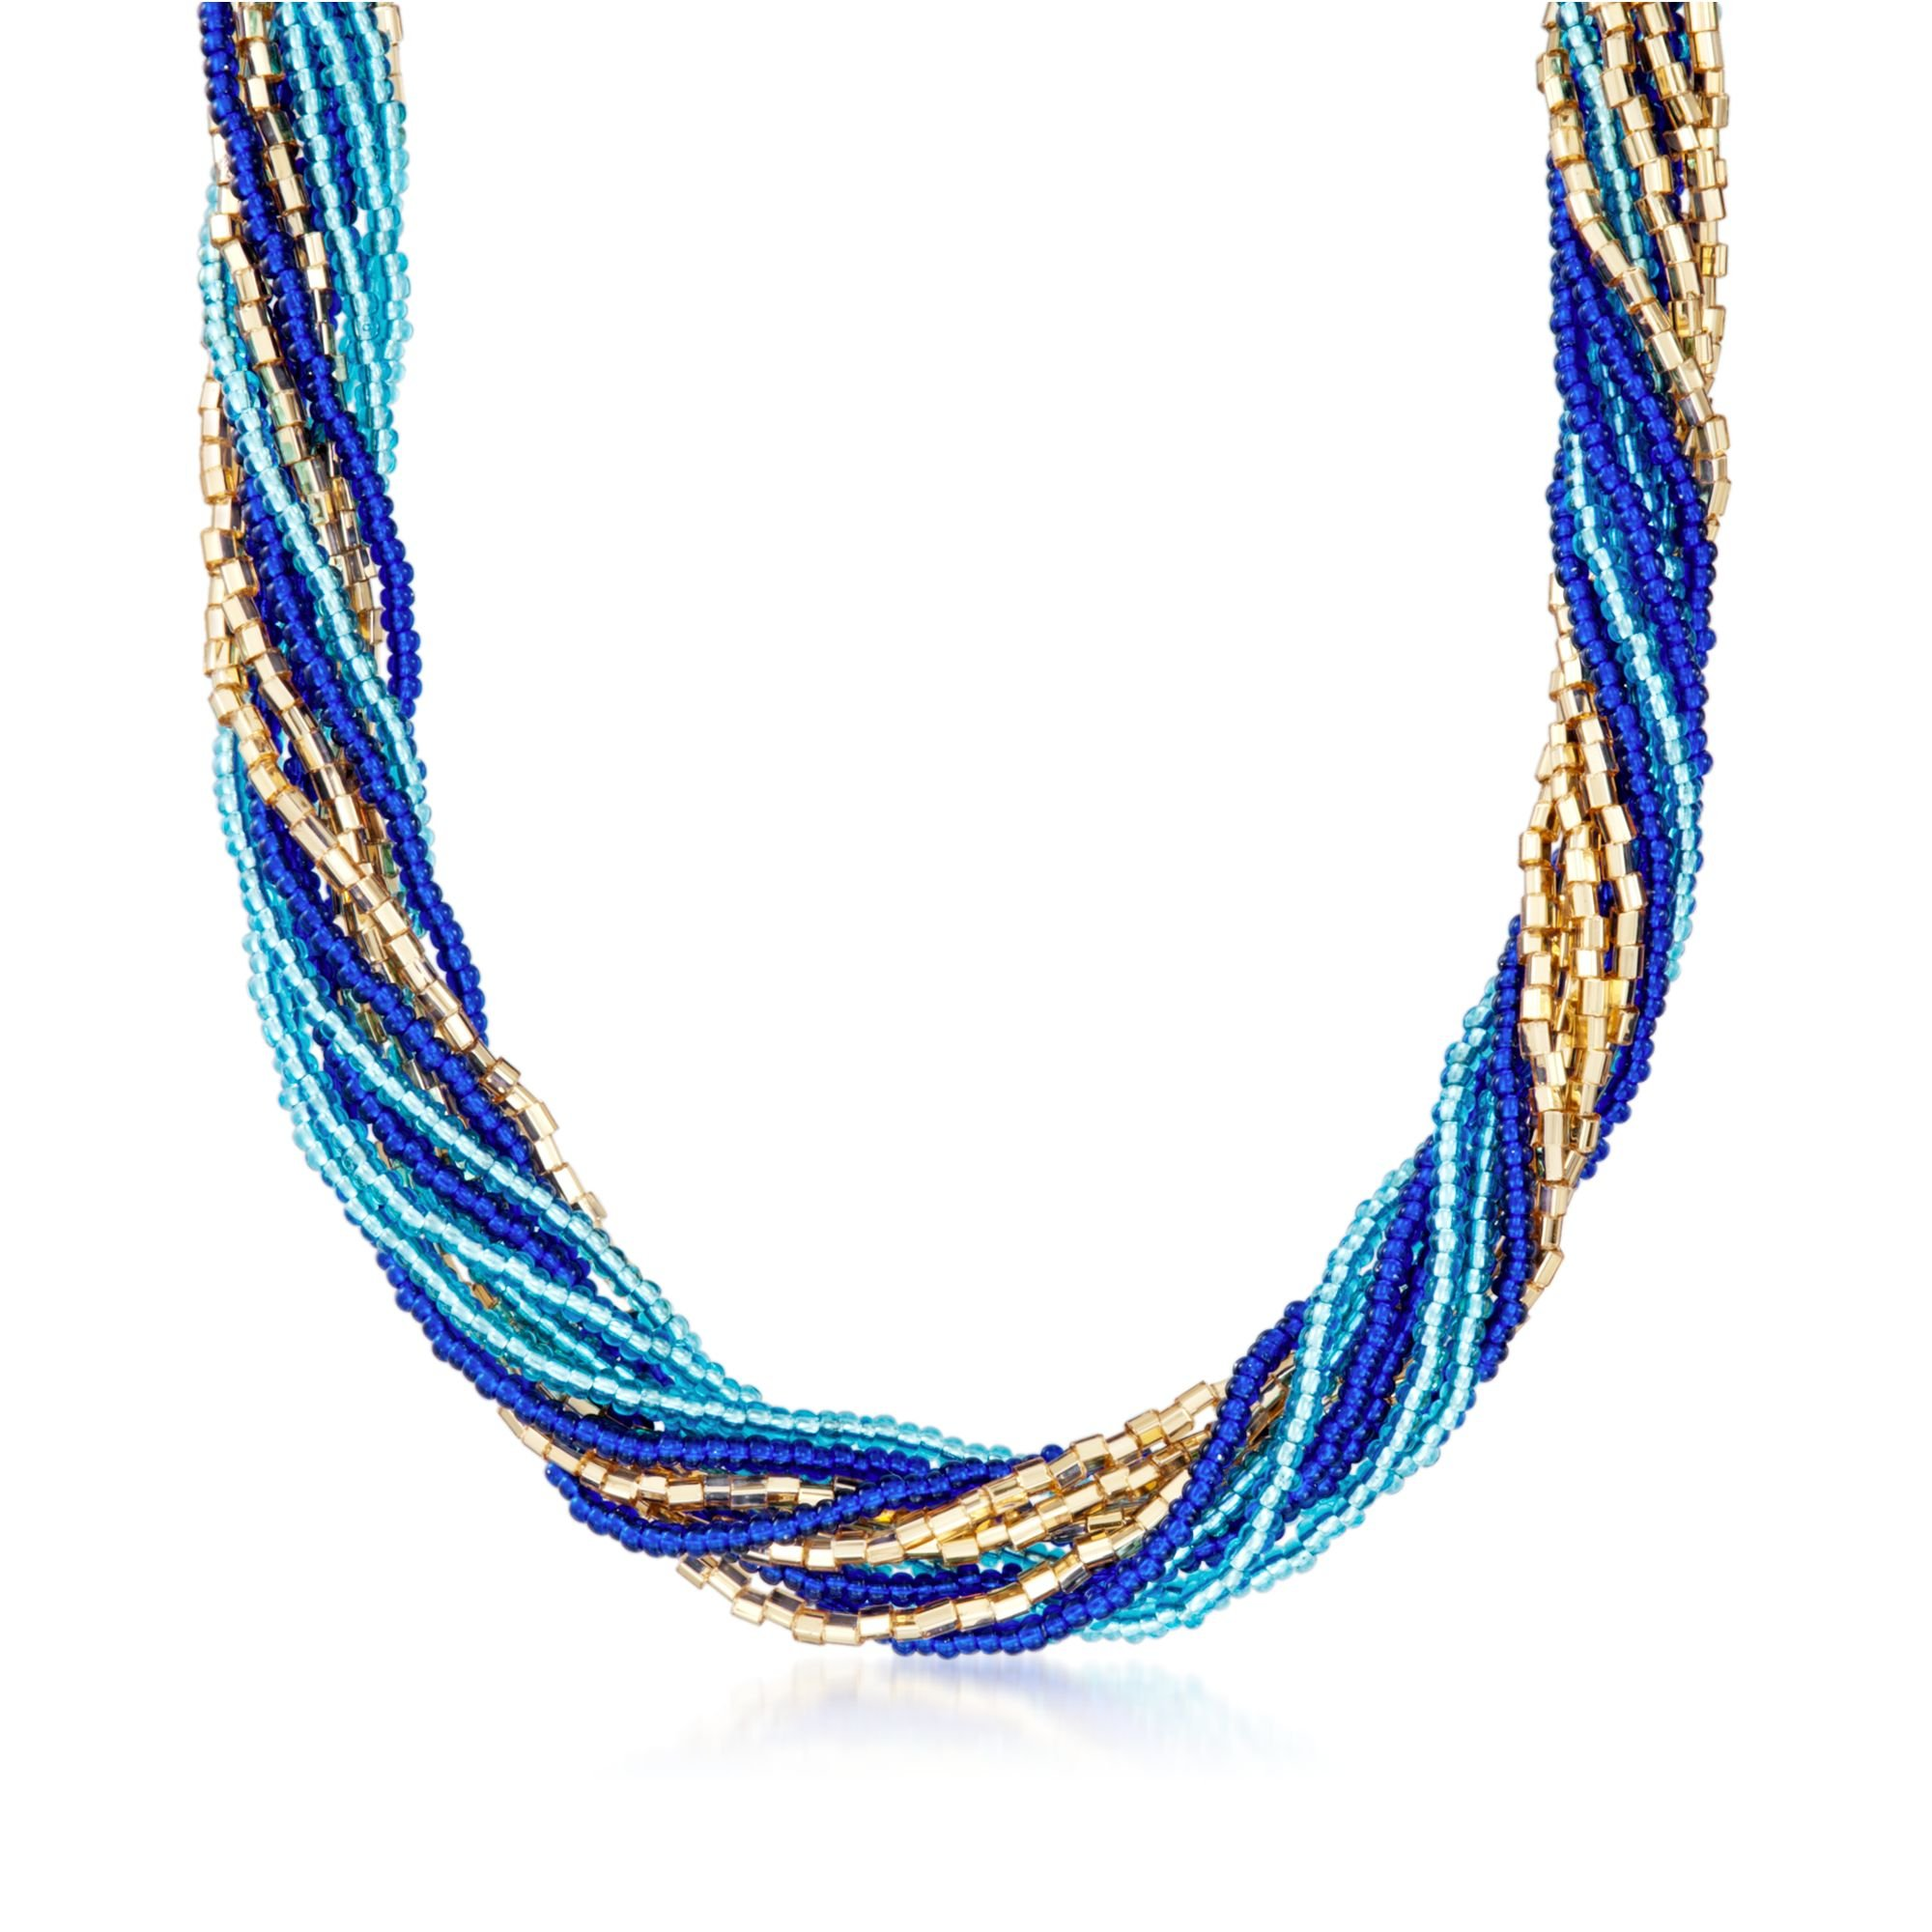 Ross-Simons Italian Blue and Golden Murano Glass Bead Torsade Necklace With 18kt Gold Over Sterling